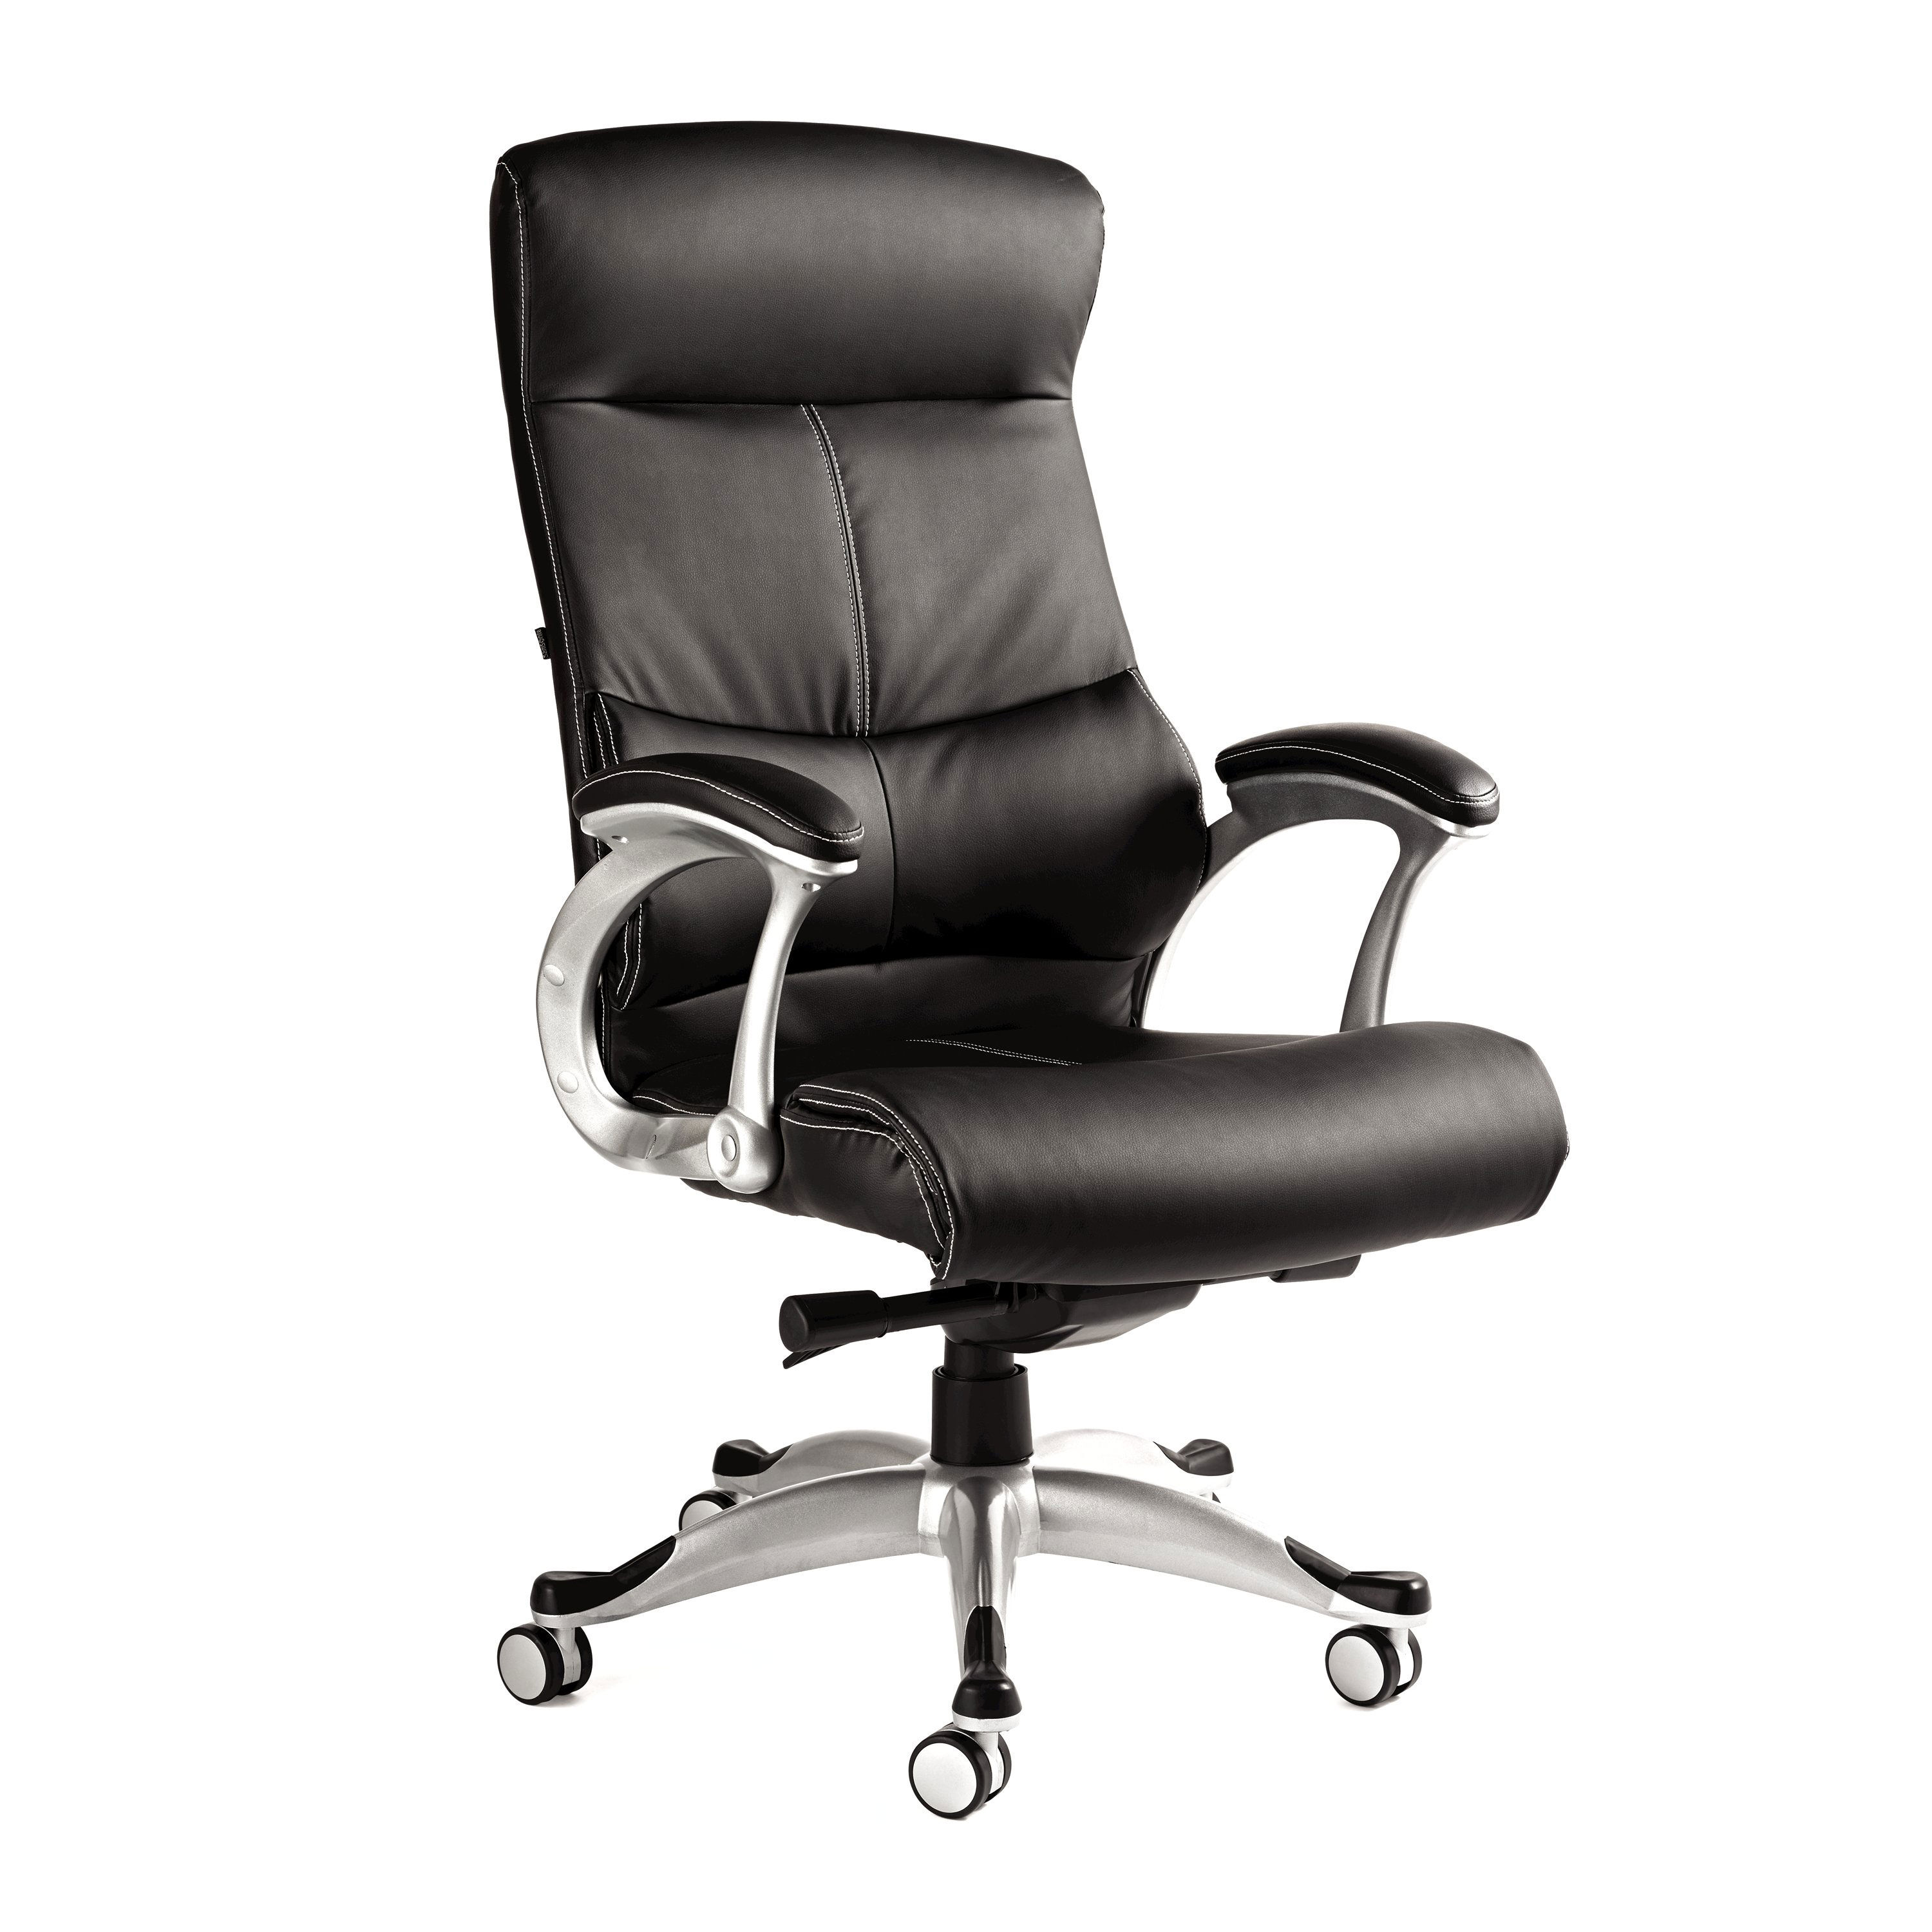 samsonite singapore premium bonded leather chair - Leather Office Chairs